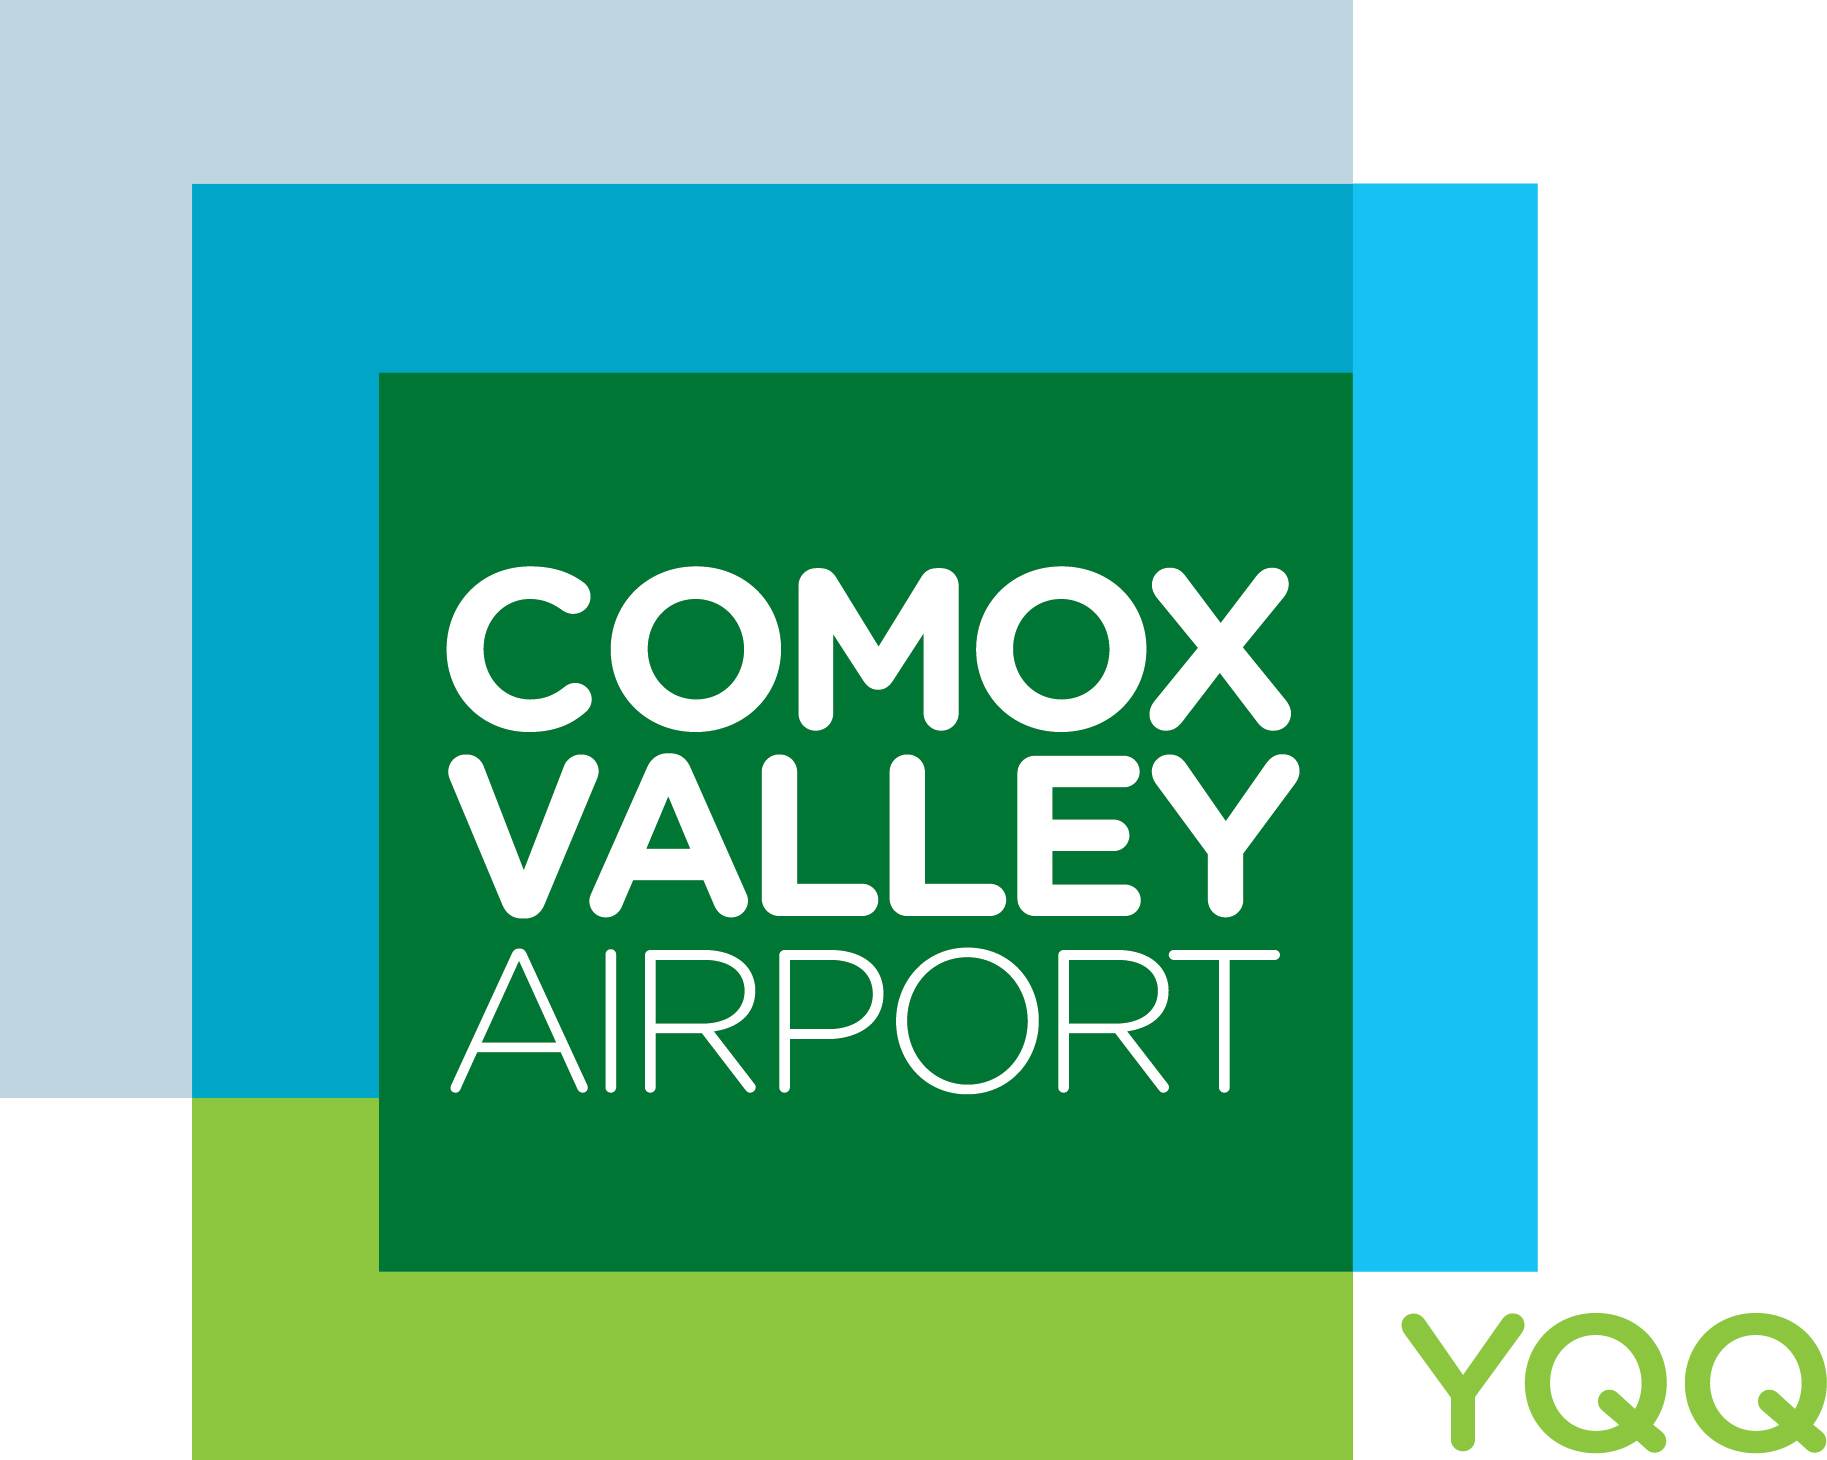 Comox Valley Airport Commission